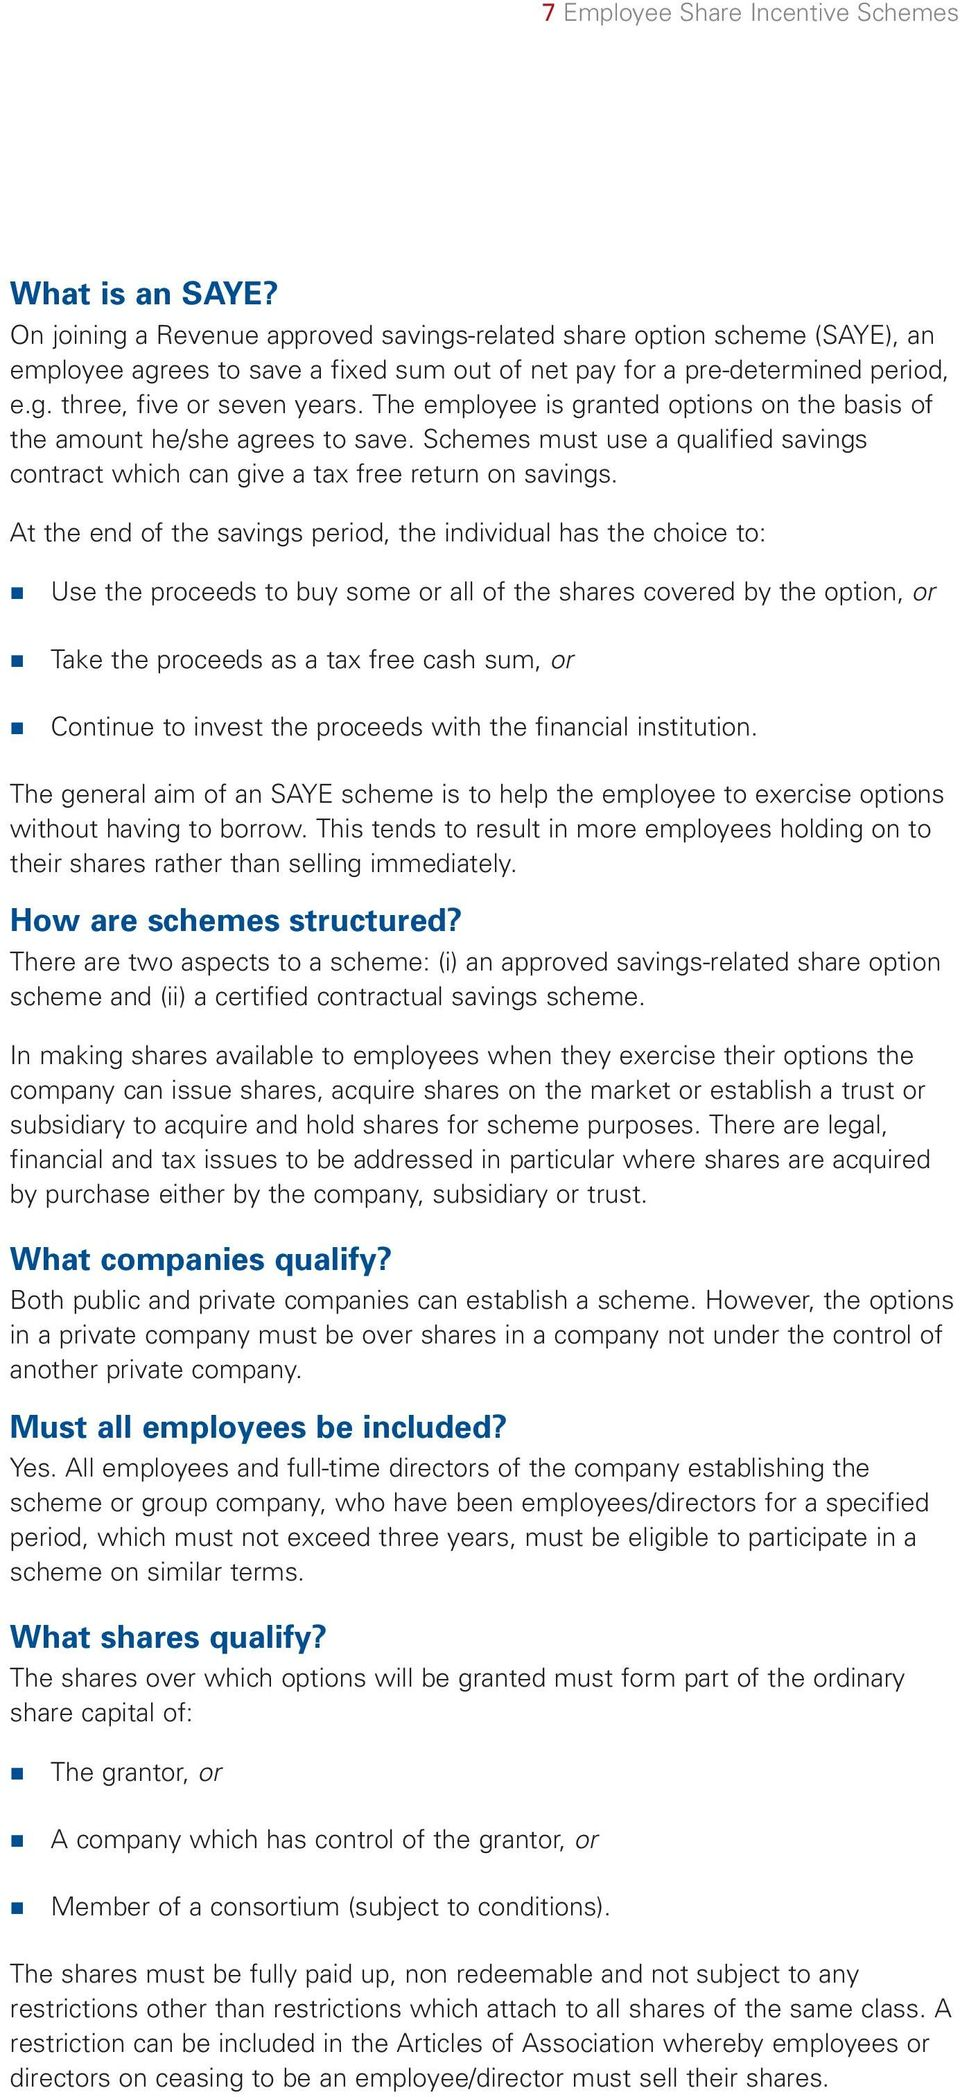 The employee is granted options on the basis of the amount he/she agrees to save. Schemes must use a qualified savings contract which can give a tax free return on savings.